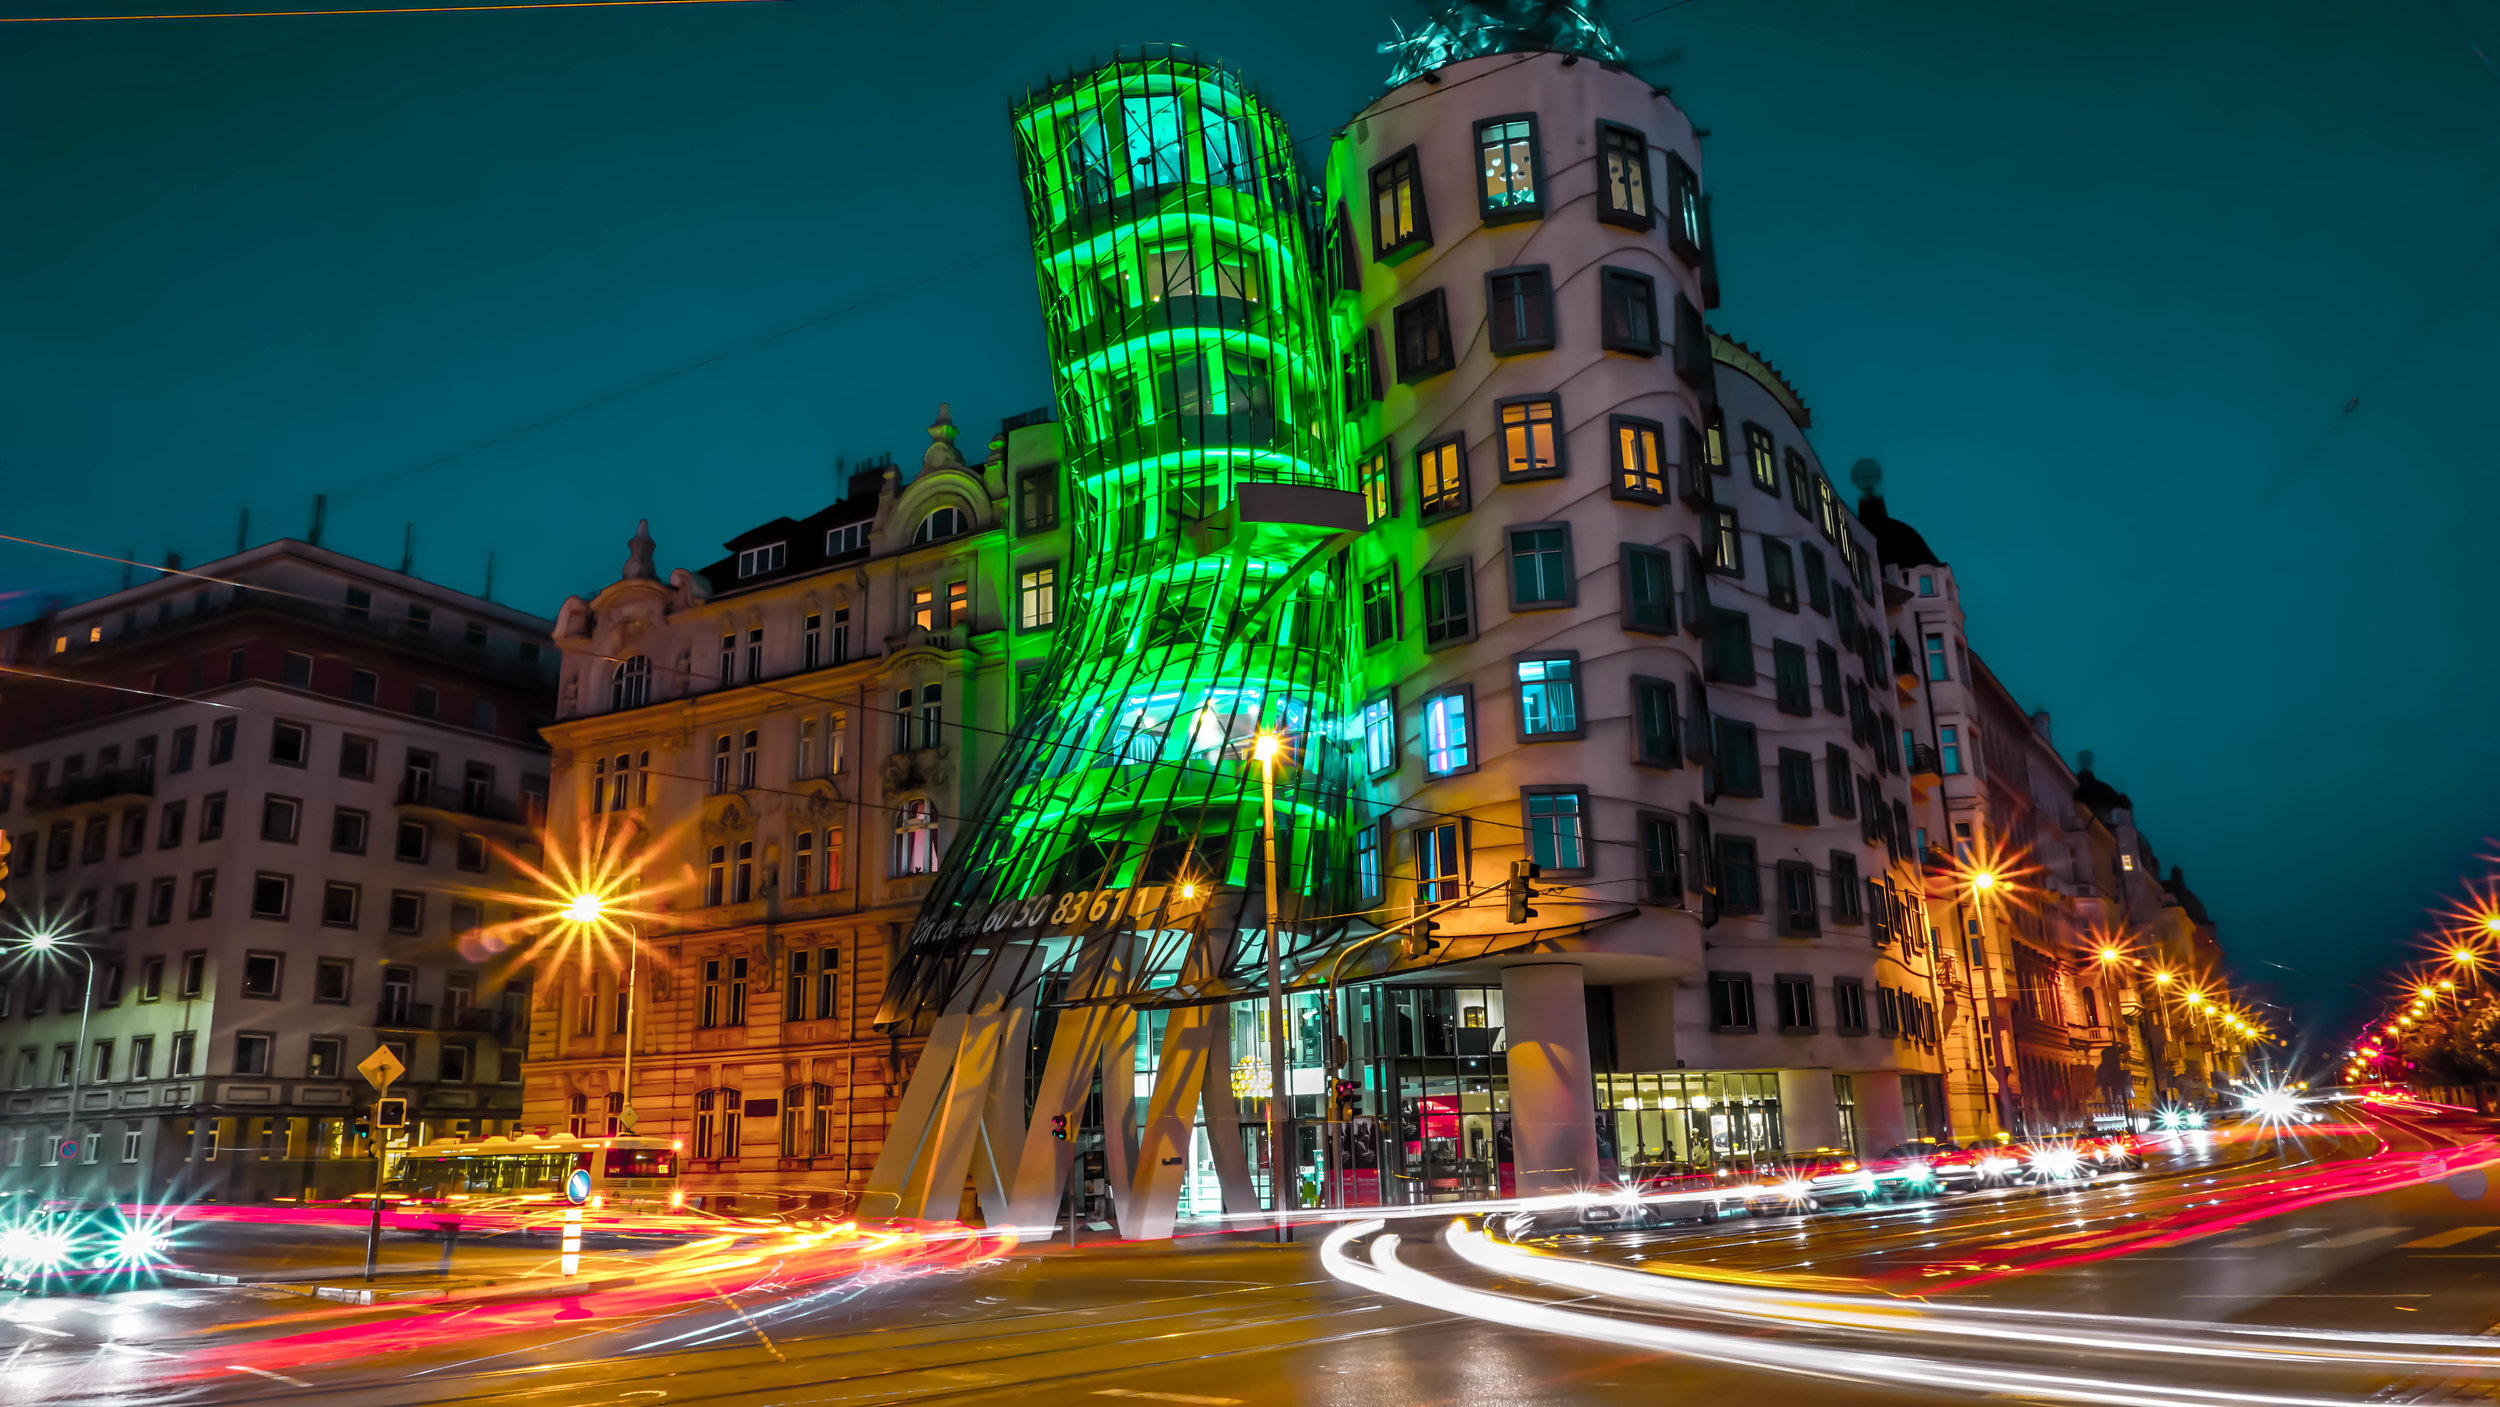 vaclav-havel-dancing-house